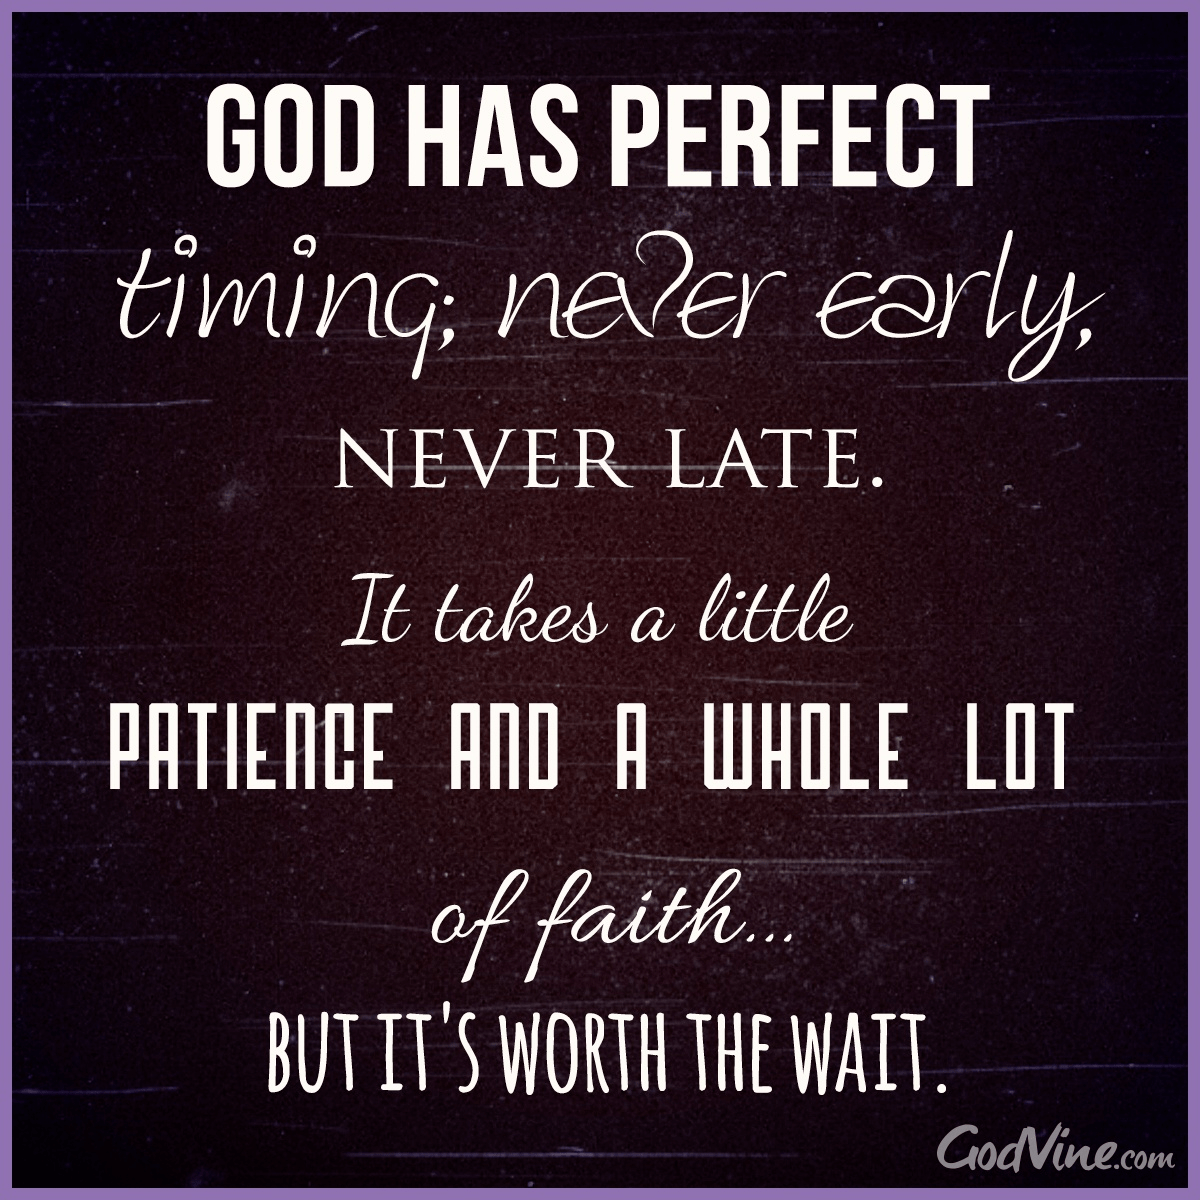 God Has Perfect Timing - Your Daily Verse